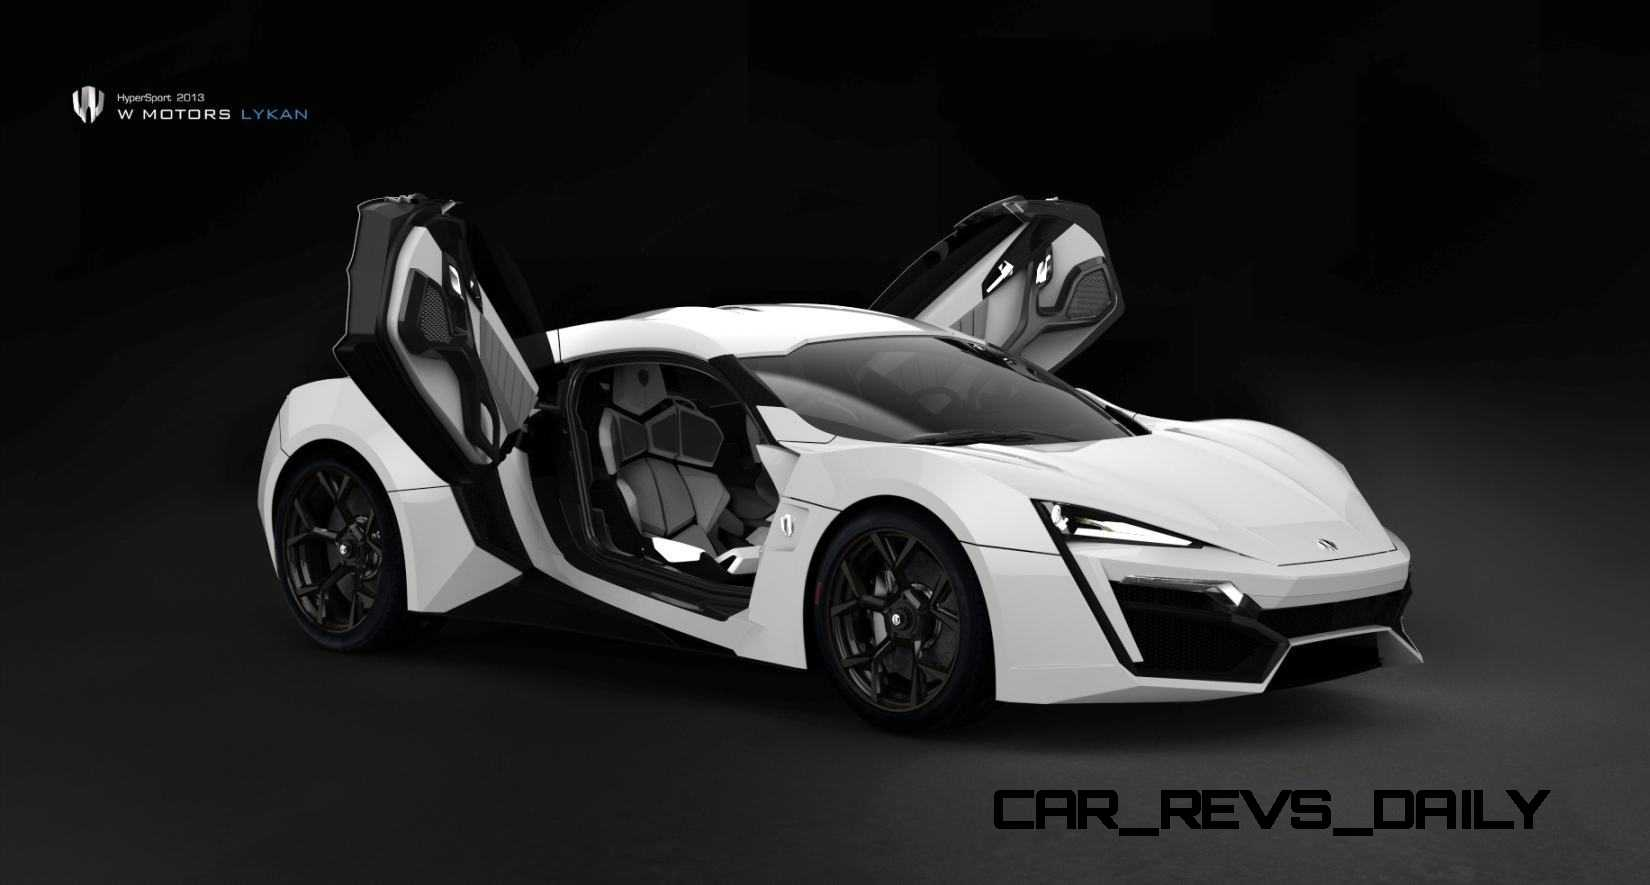 2014 w motors lykan hypersport in 40 amazing new wallpapers including megalux interior. Black Bedroom Furniture Sets. Home Design Ideas